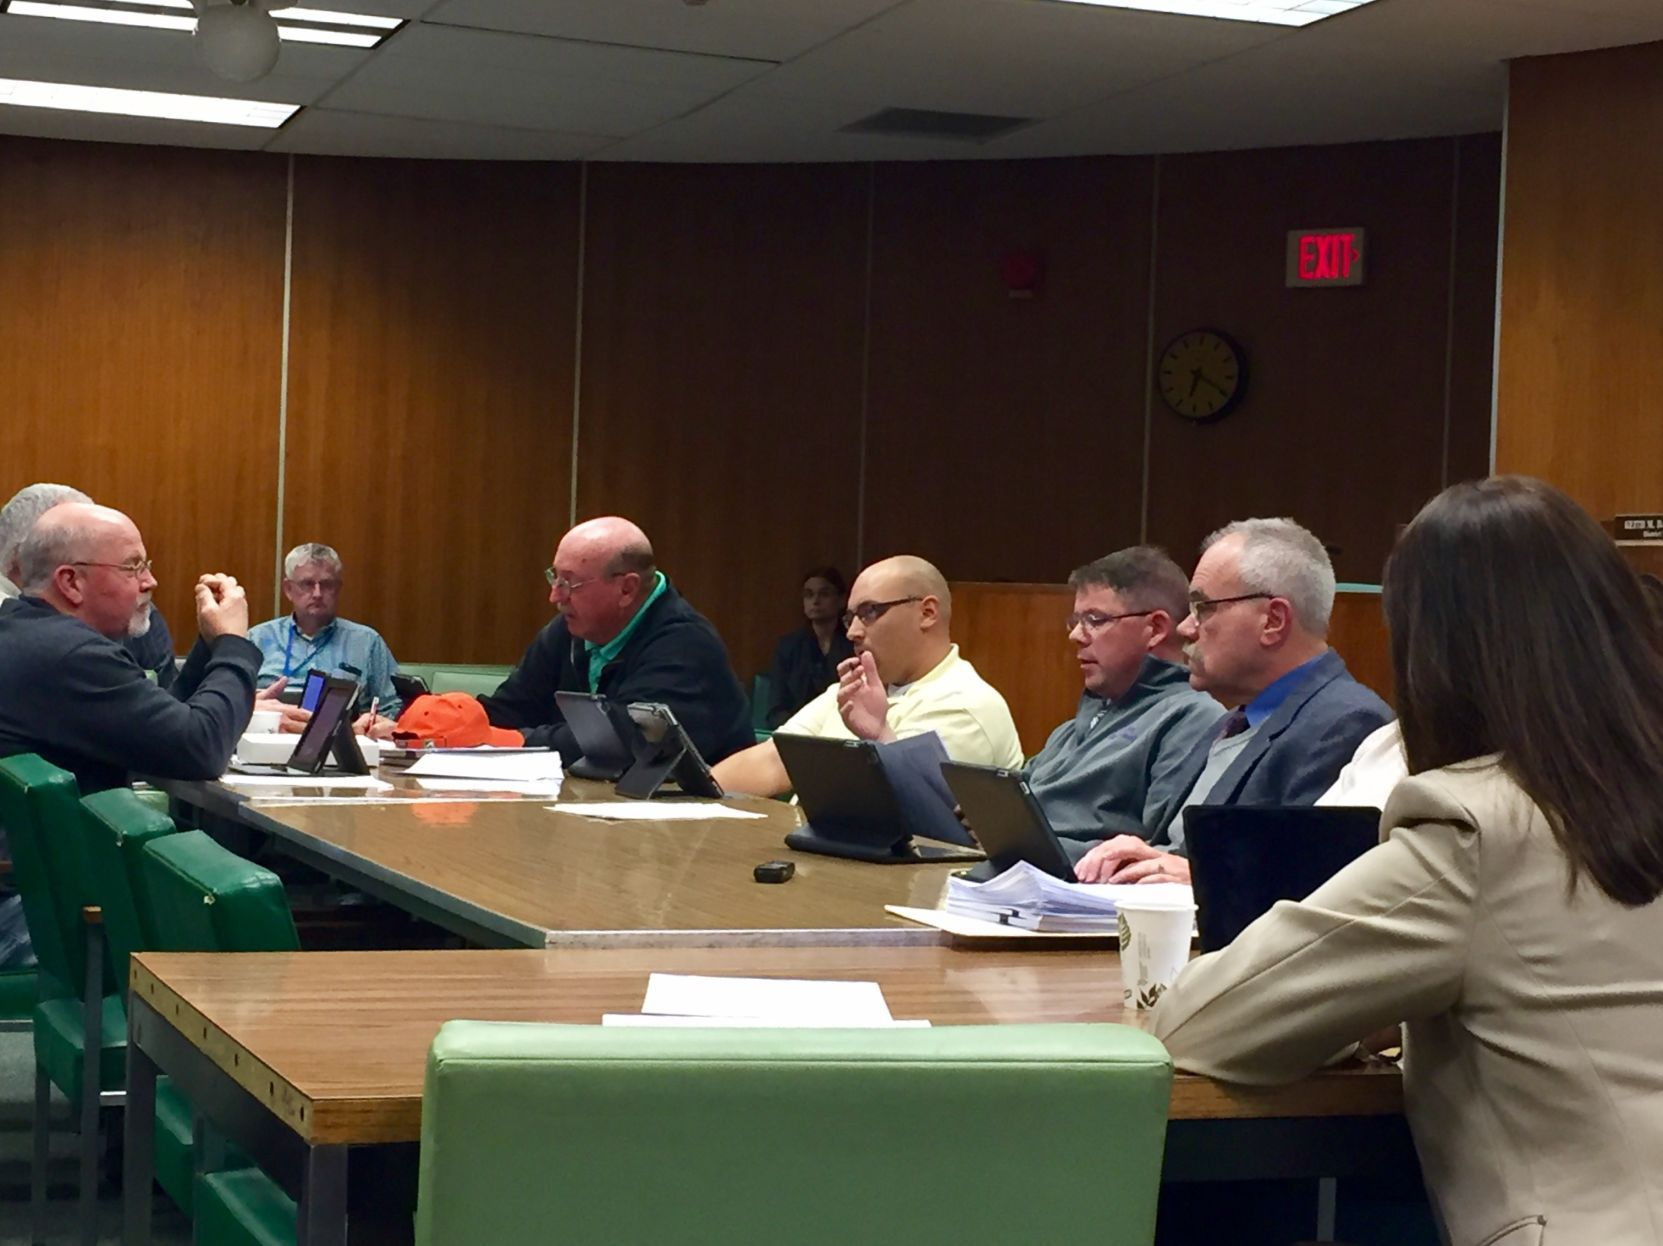 Cayuga County could implement hiring freeze while assessing